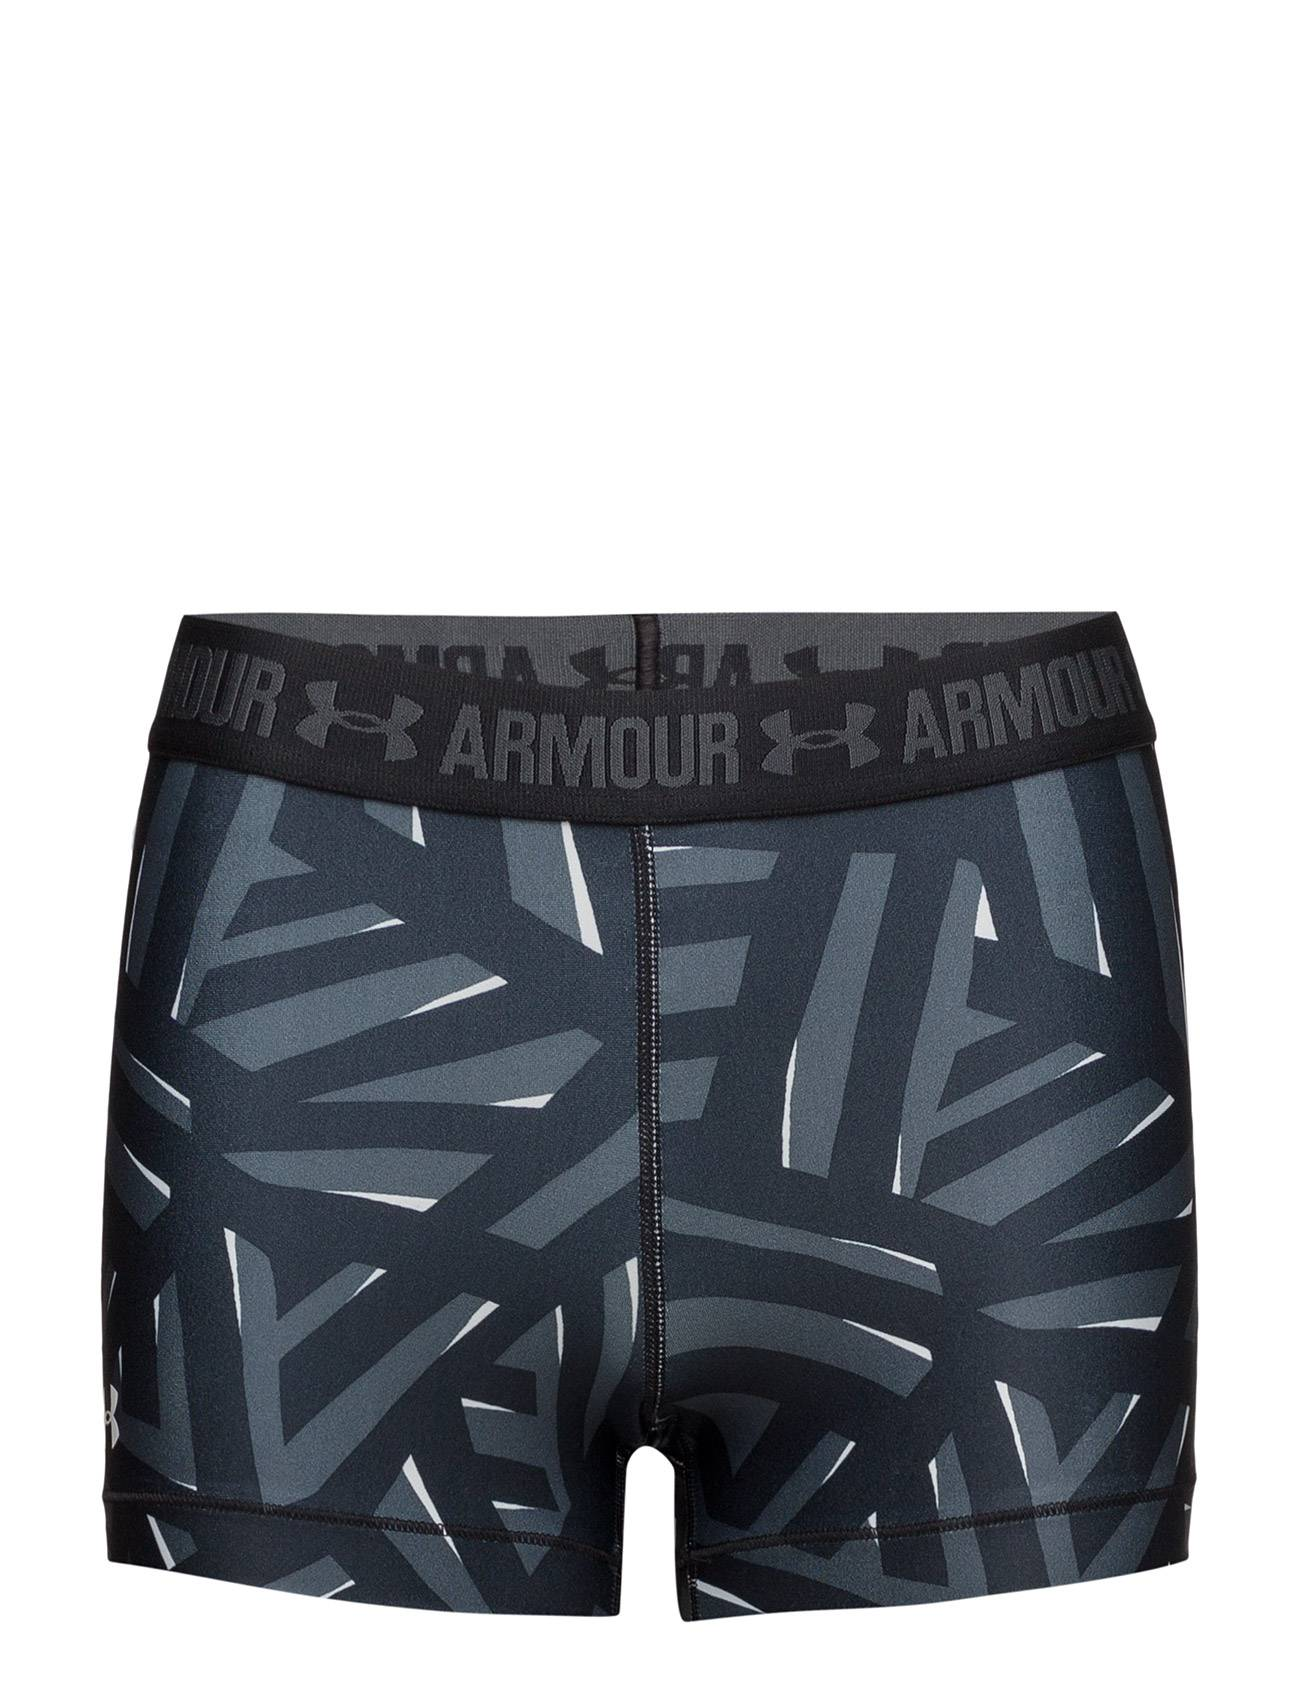 Under Armour Ua Hg Armour Printed Shorty